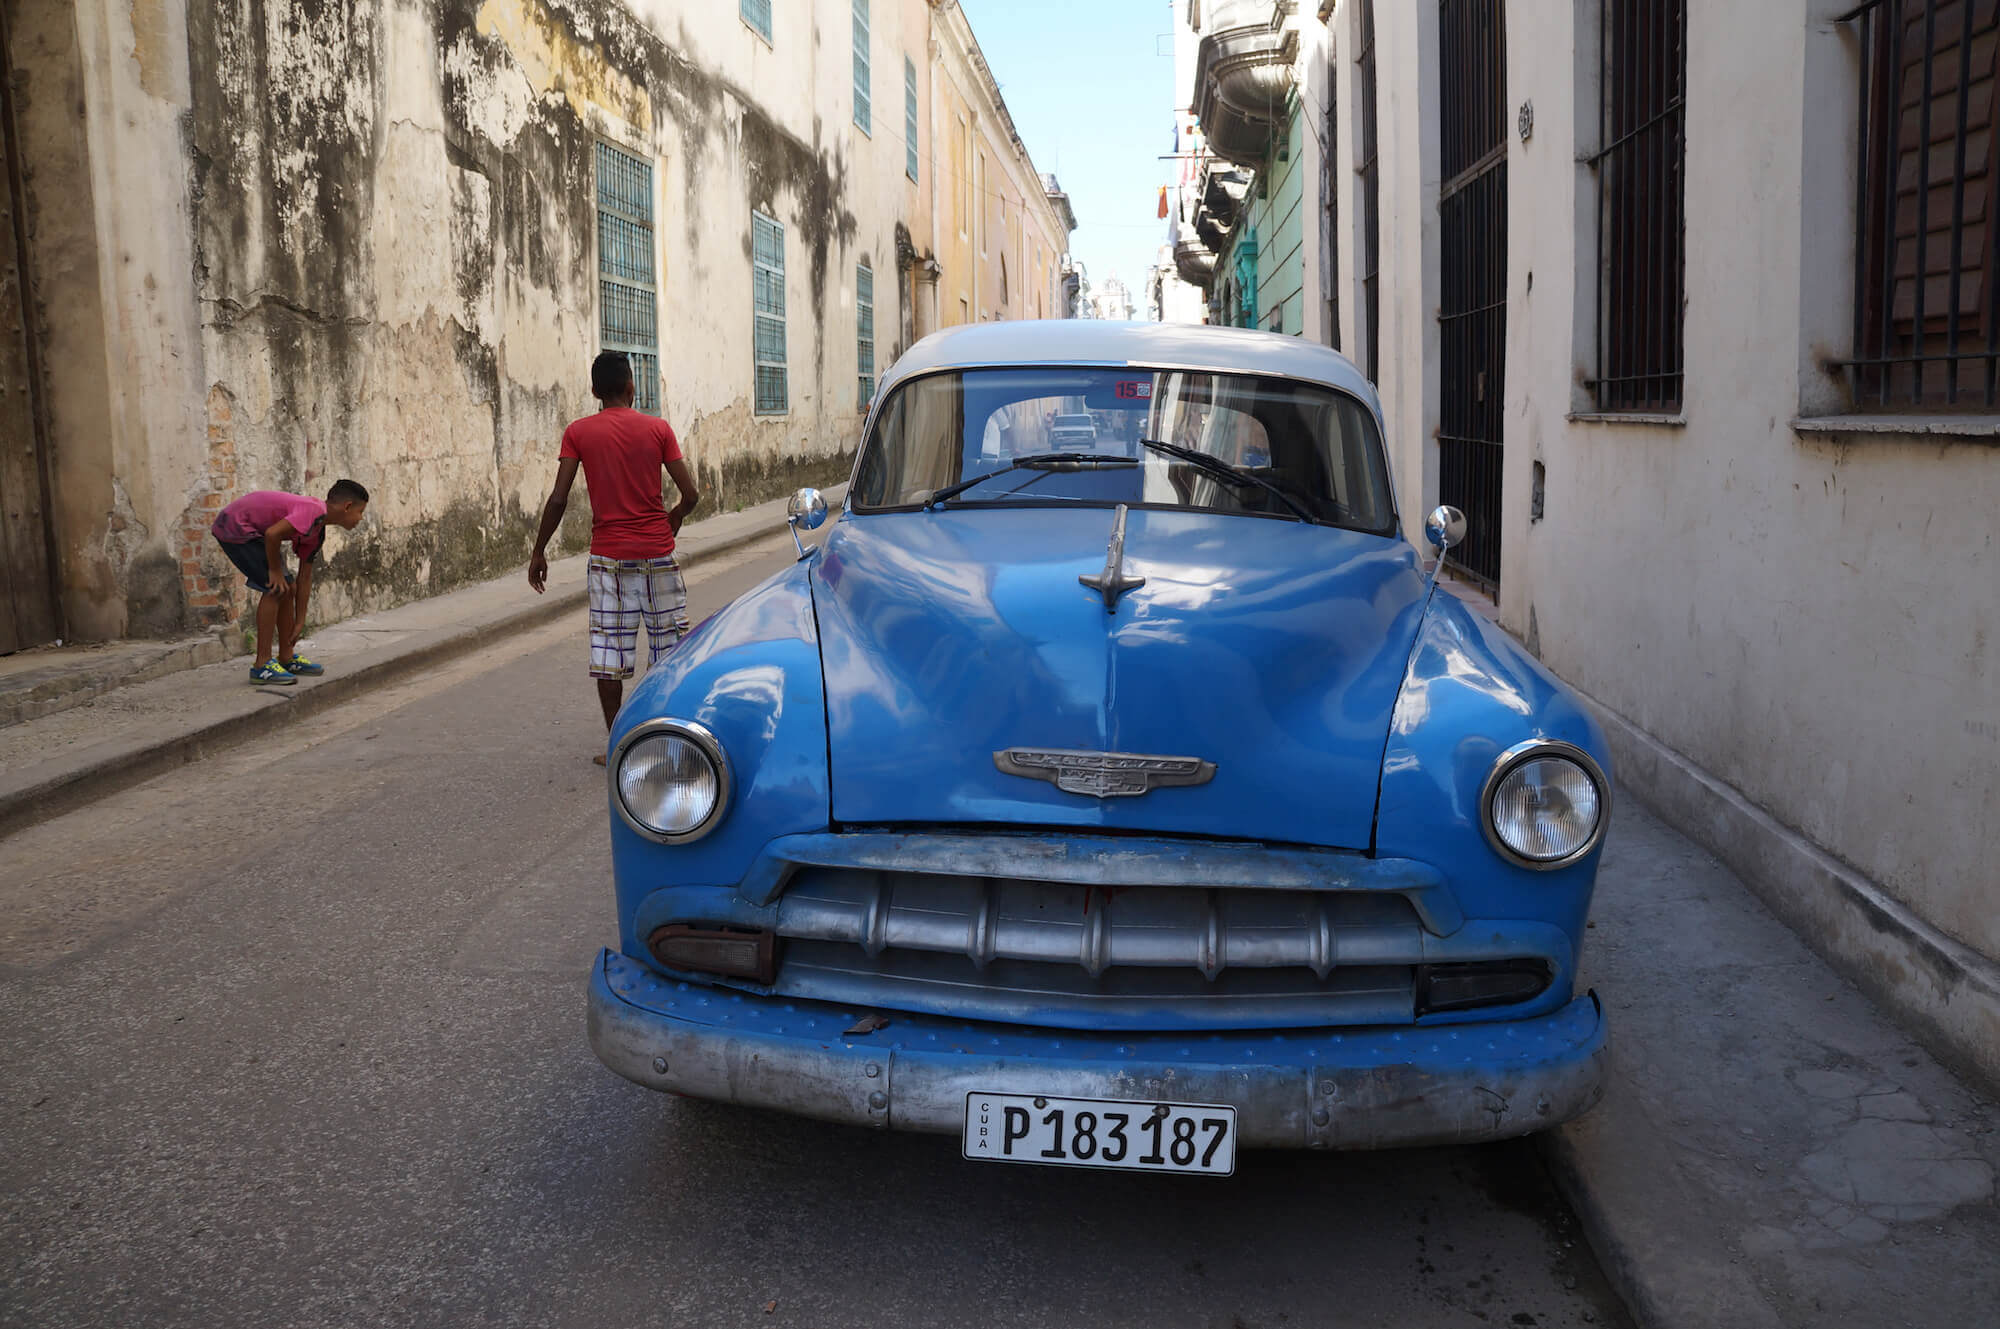 classic blue car in Cuba